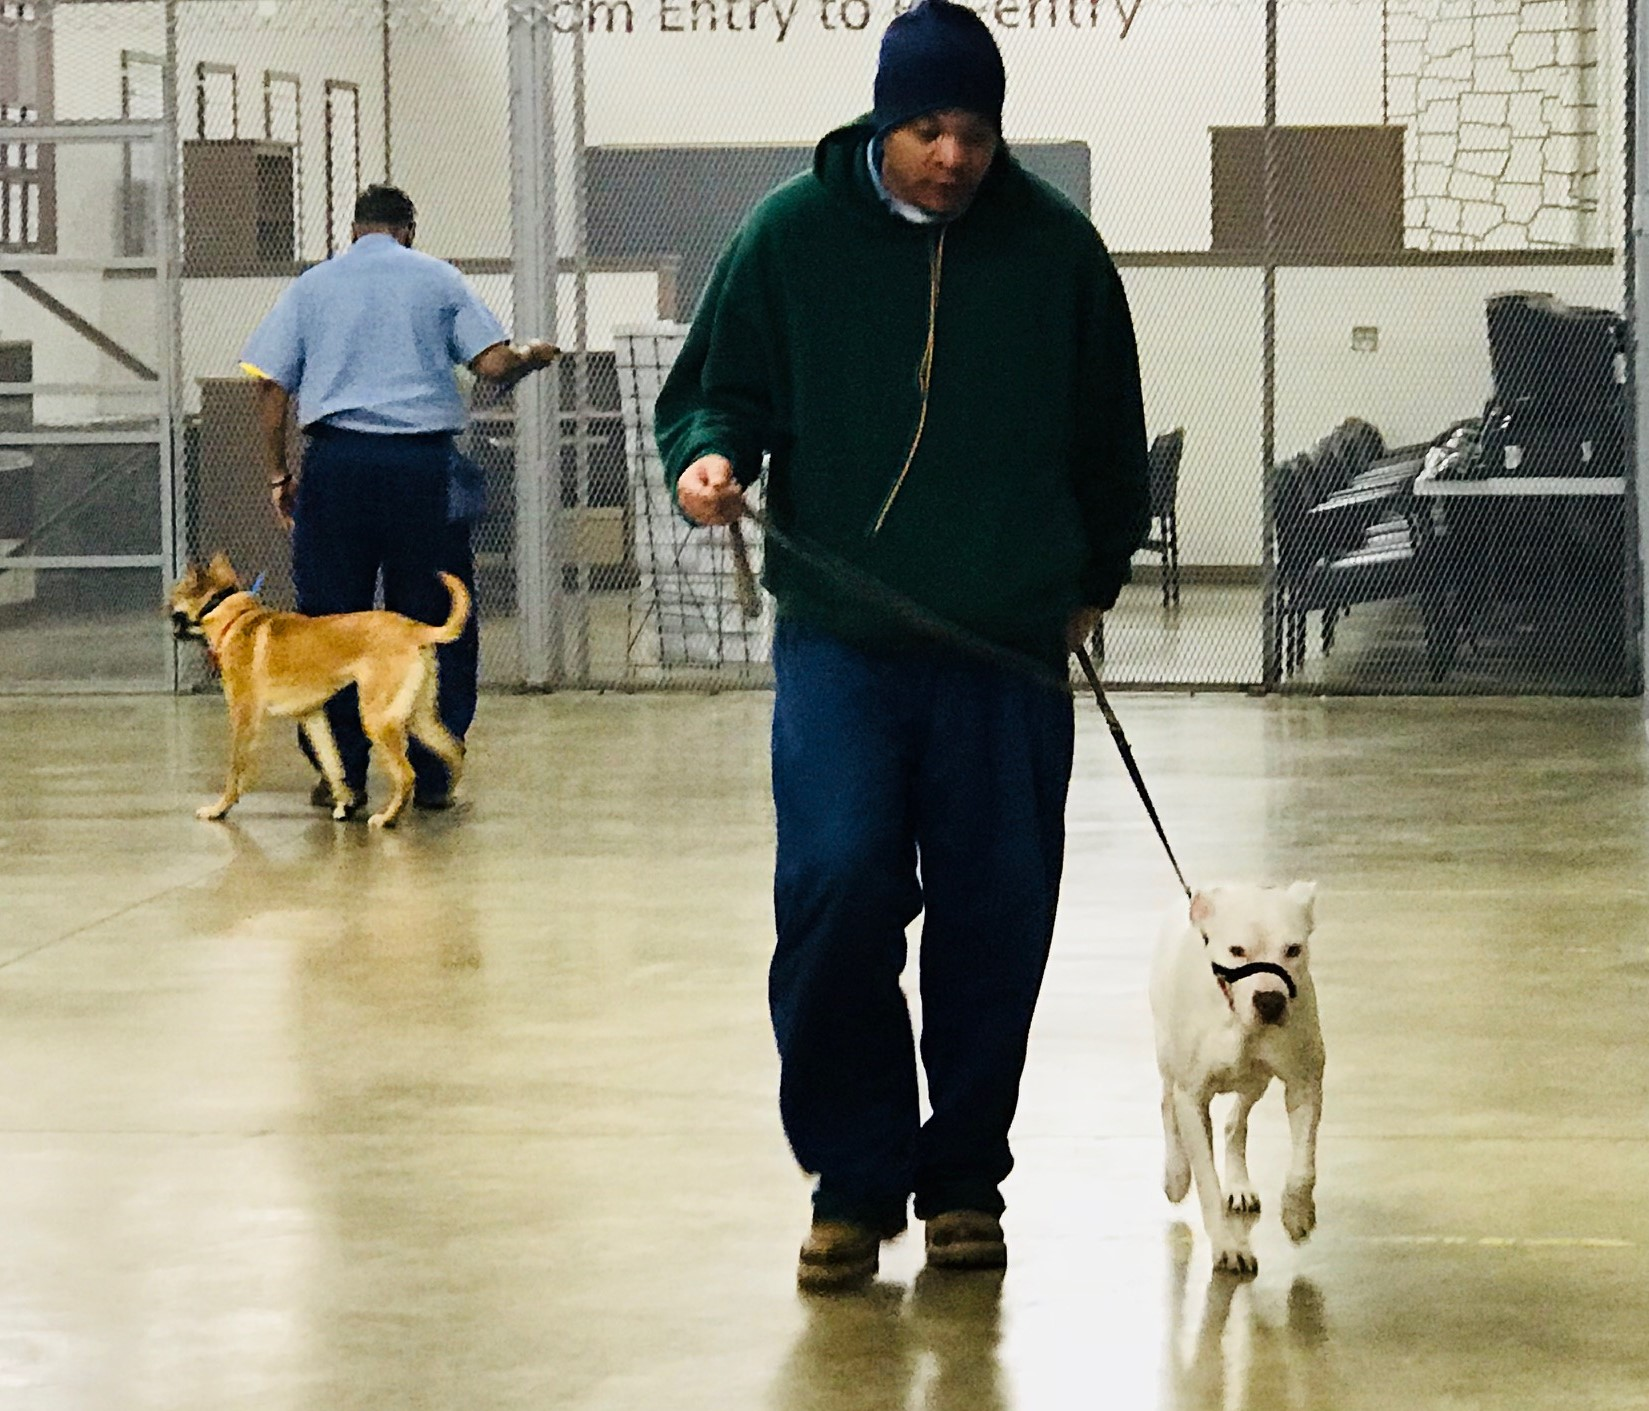 Volunteers Donate Time to Train Dogs in Prison